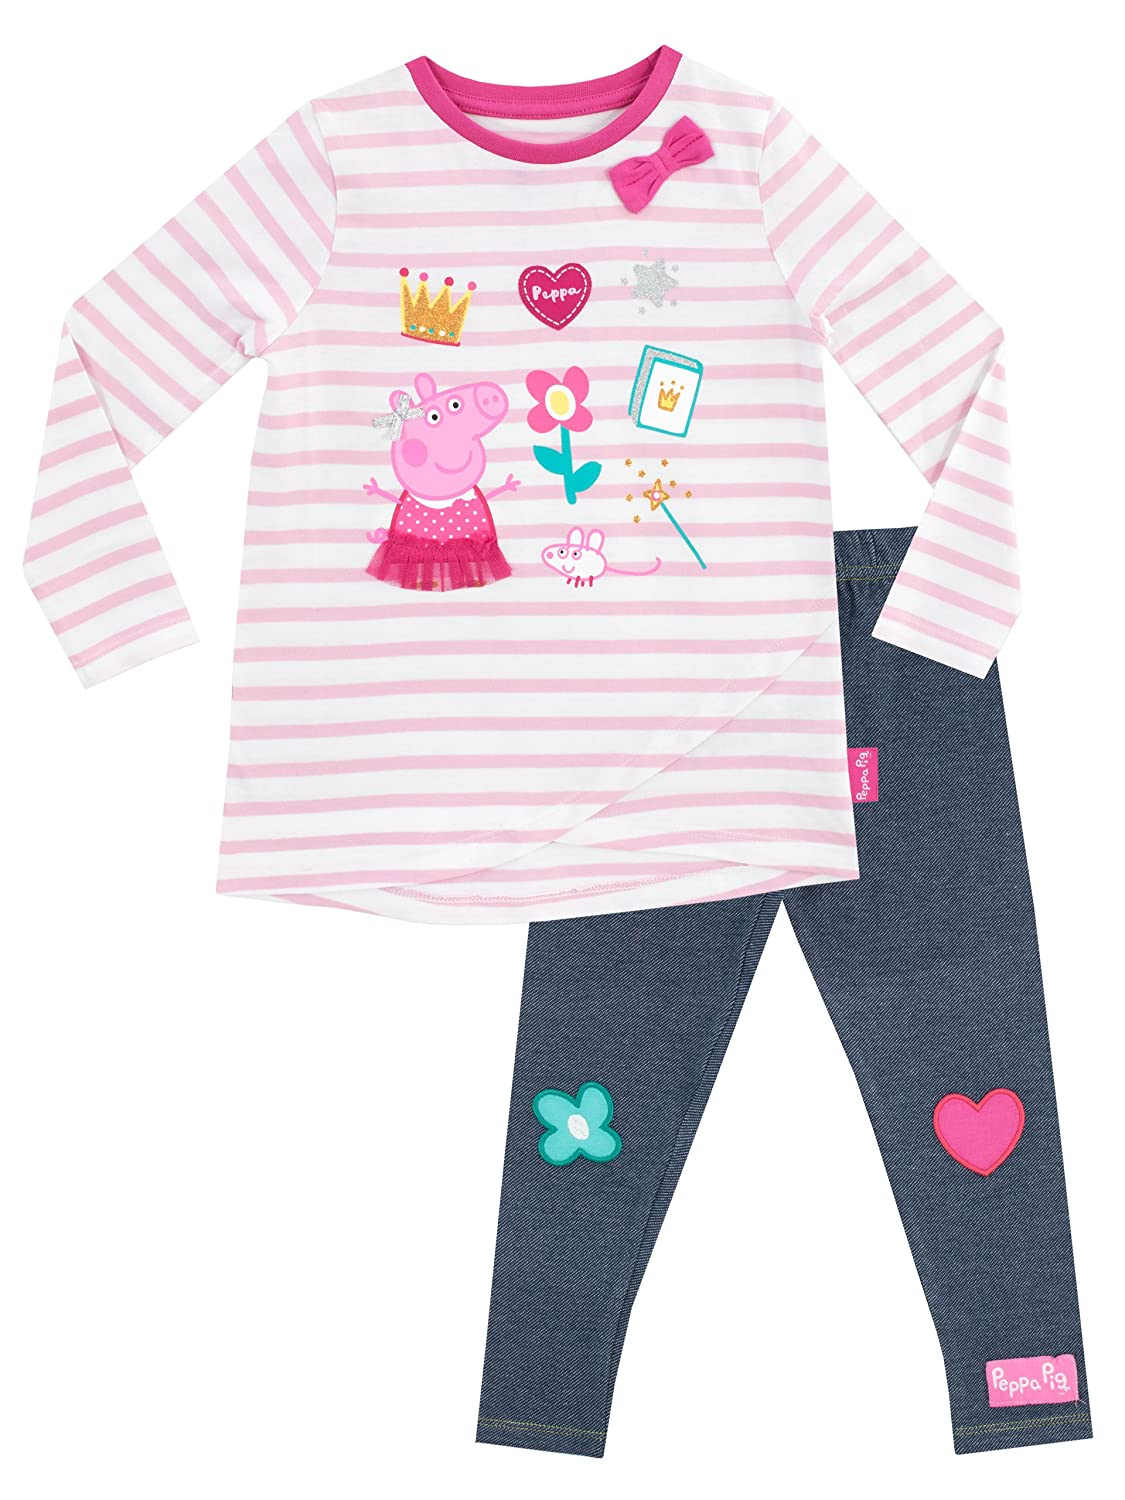 Peppa Pig Girls' Peppa T-shirt and Leggings